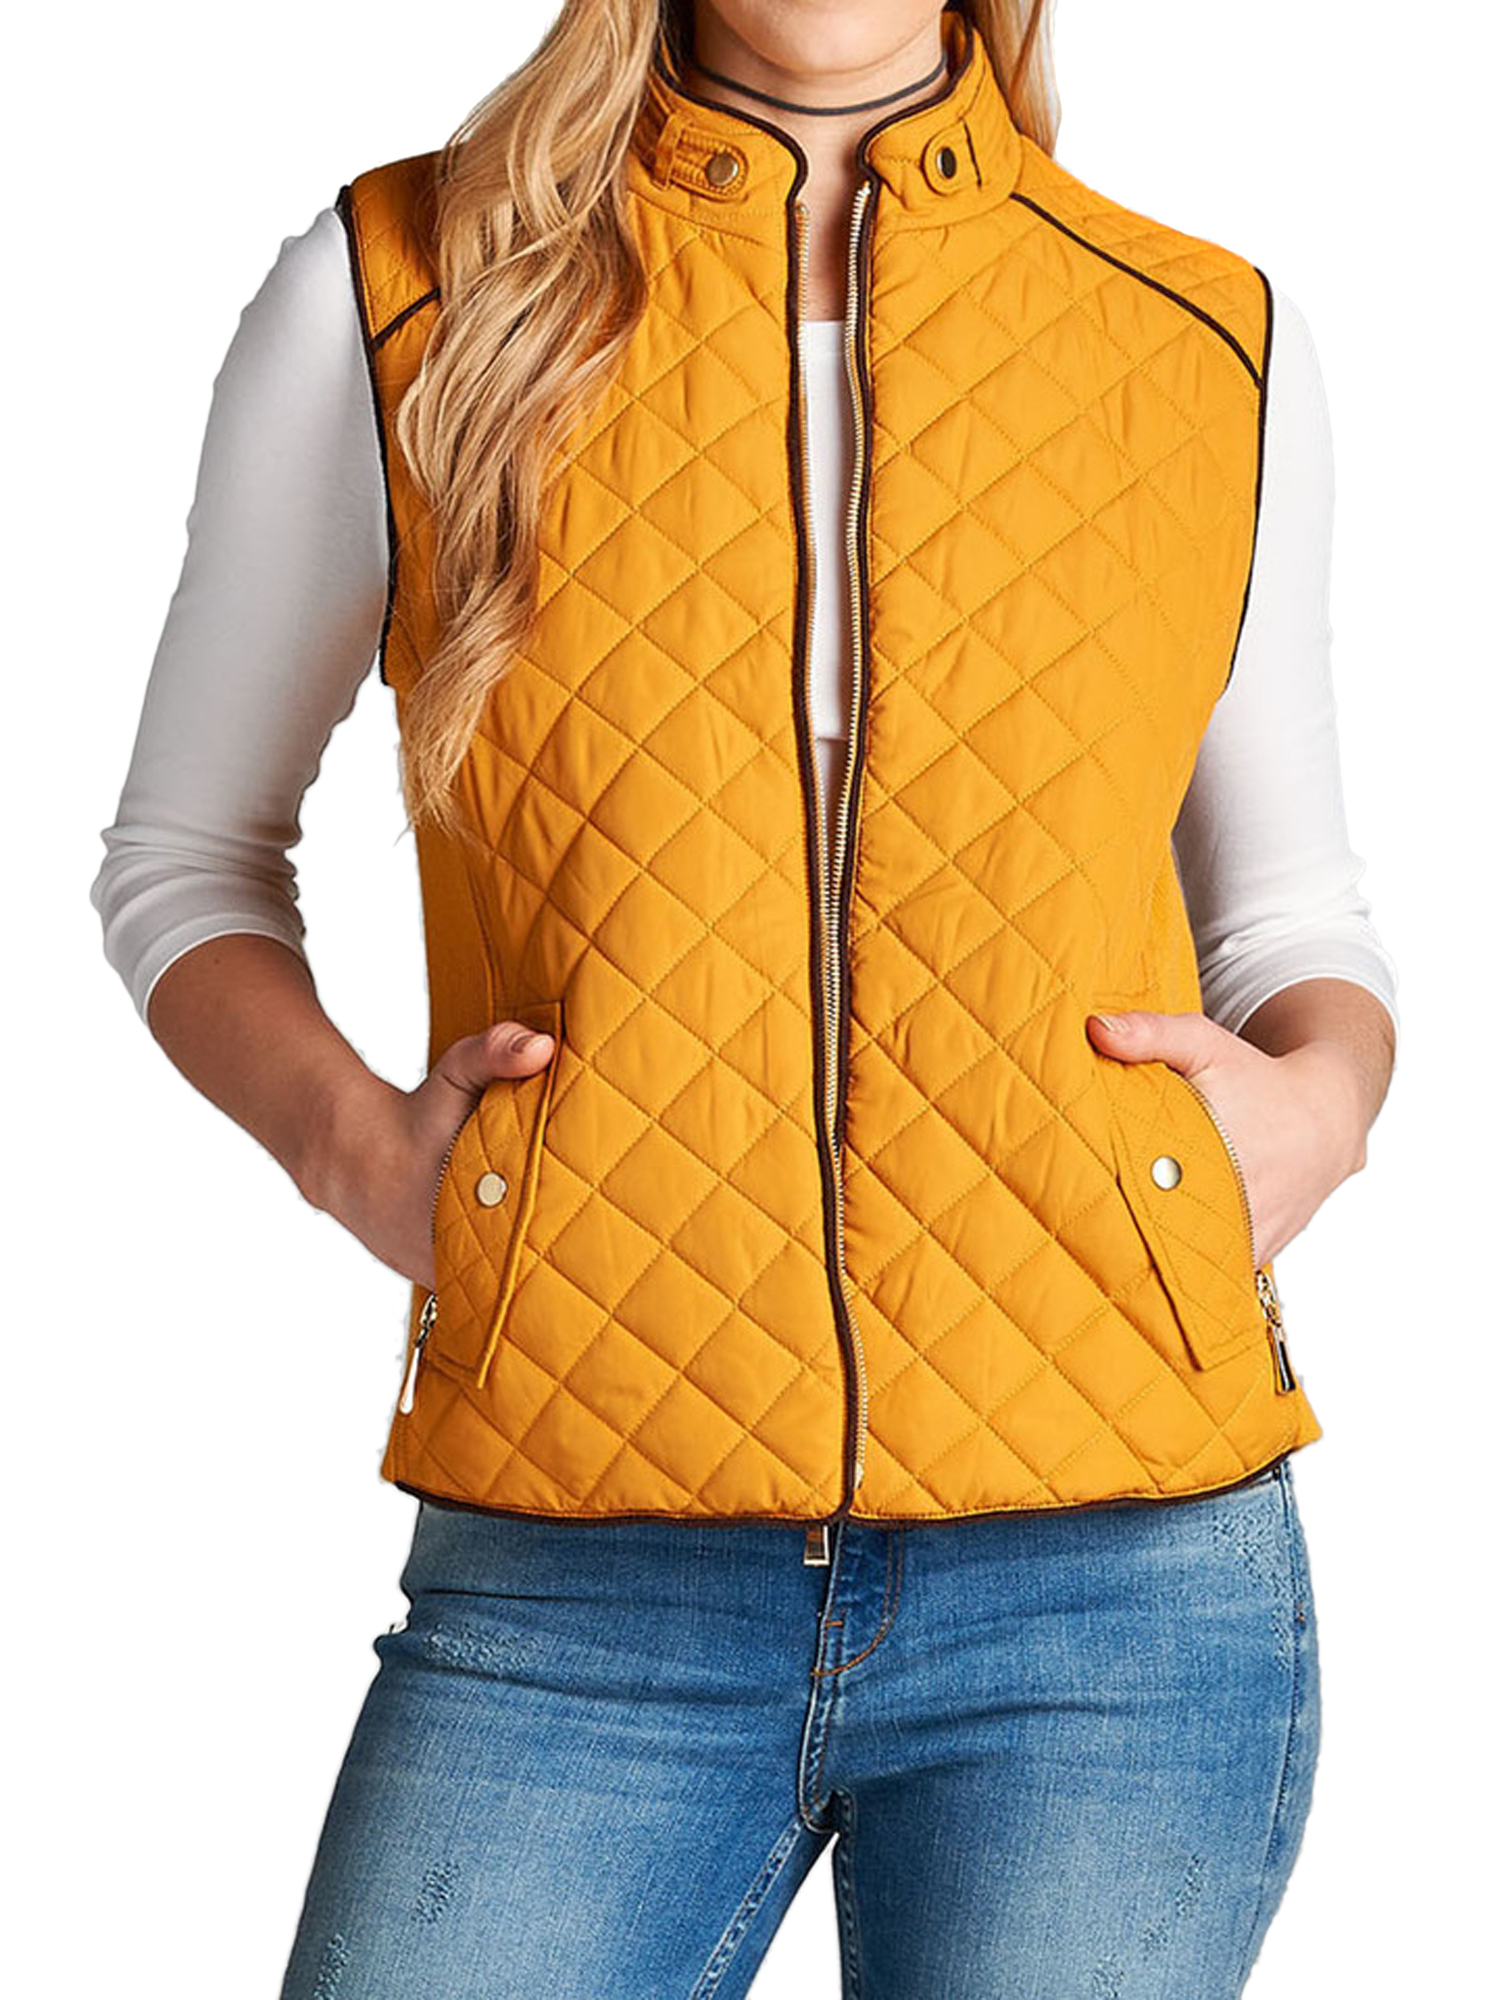 Women & Juniors Quilted Padding Lightweight Vest Jacket with Suede Pipping Details and Side Pockets